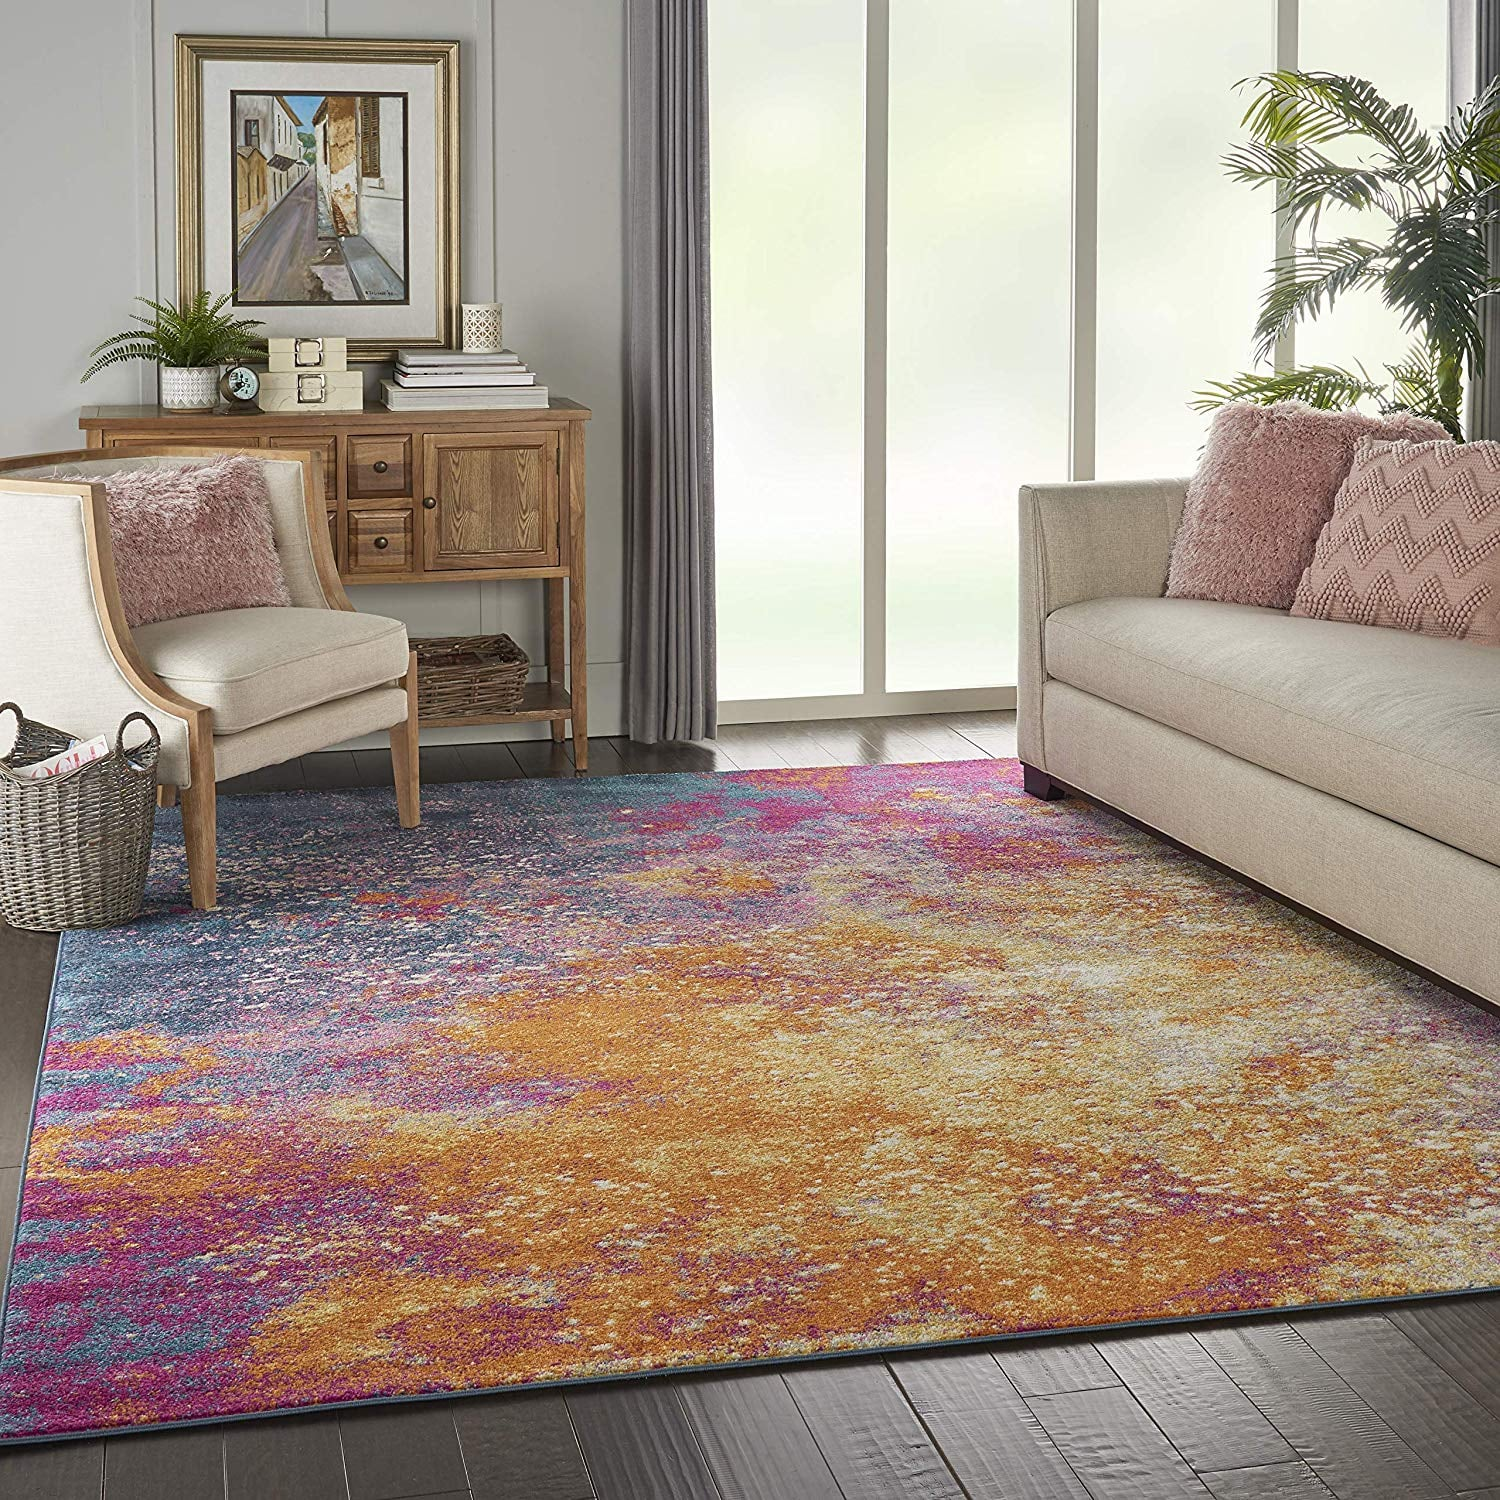 Nourison Passion Modern Abstract Colorful Area Rug 30 Rugs That Only Look Expensive But Cost 250 Or Less Popsugar Home Photo 28